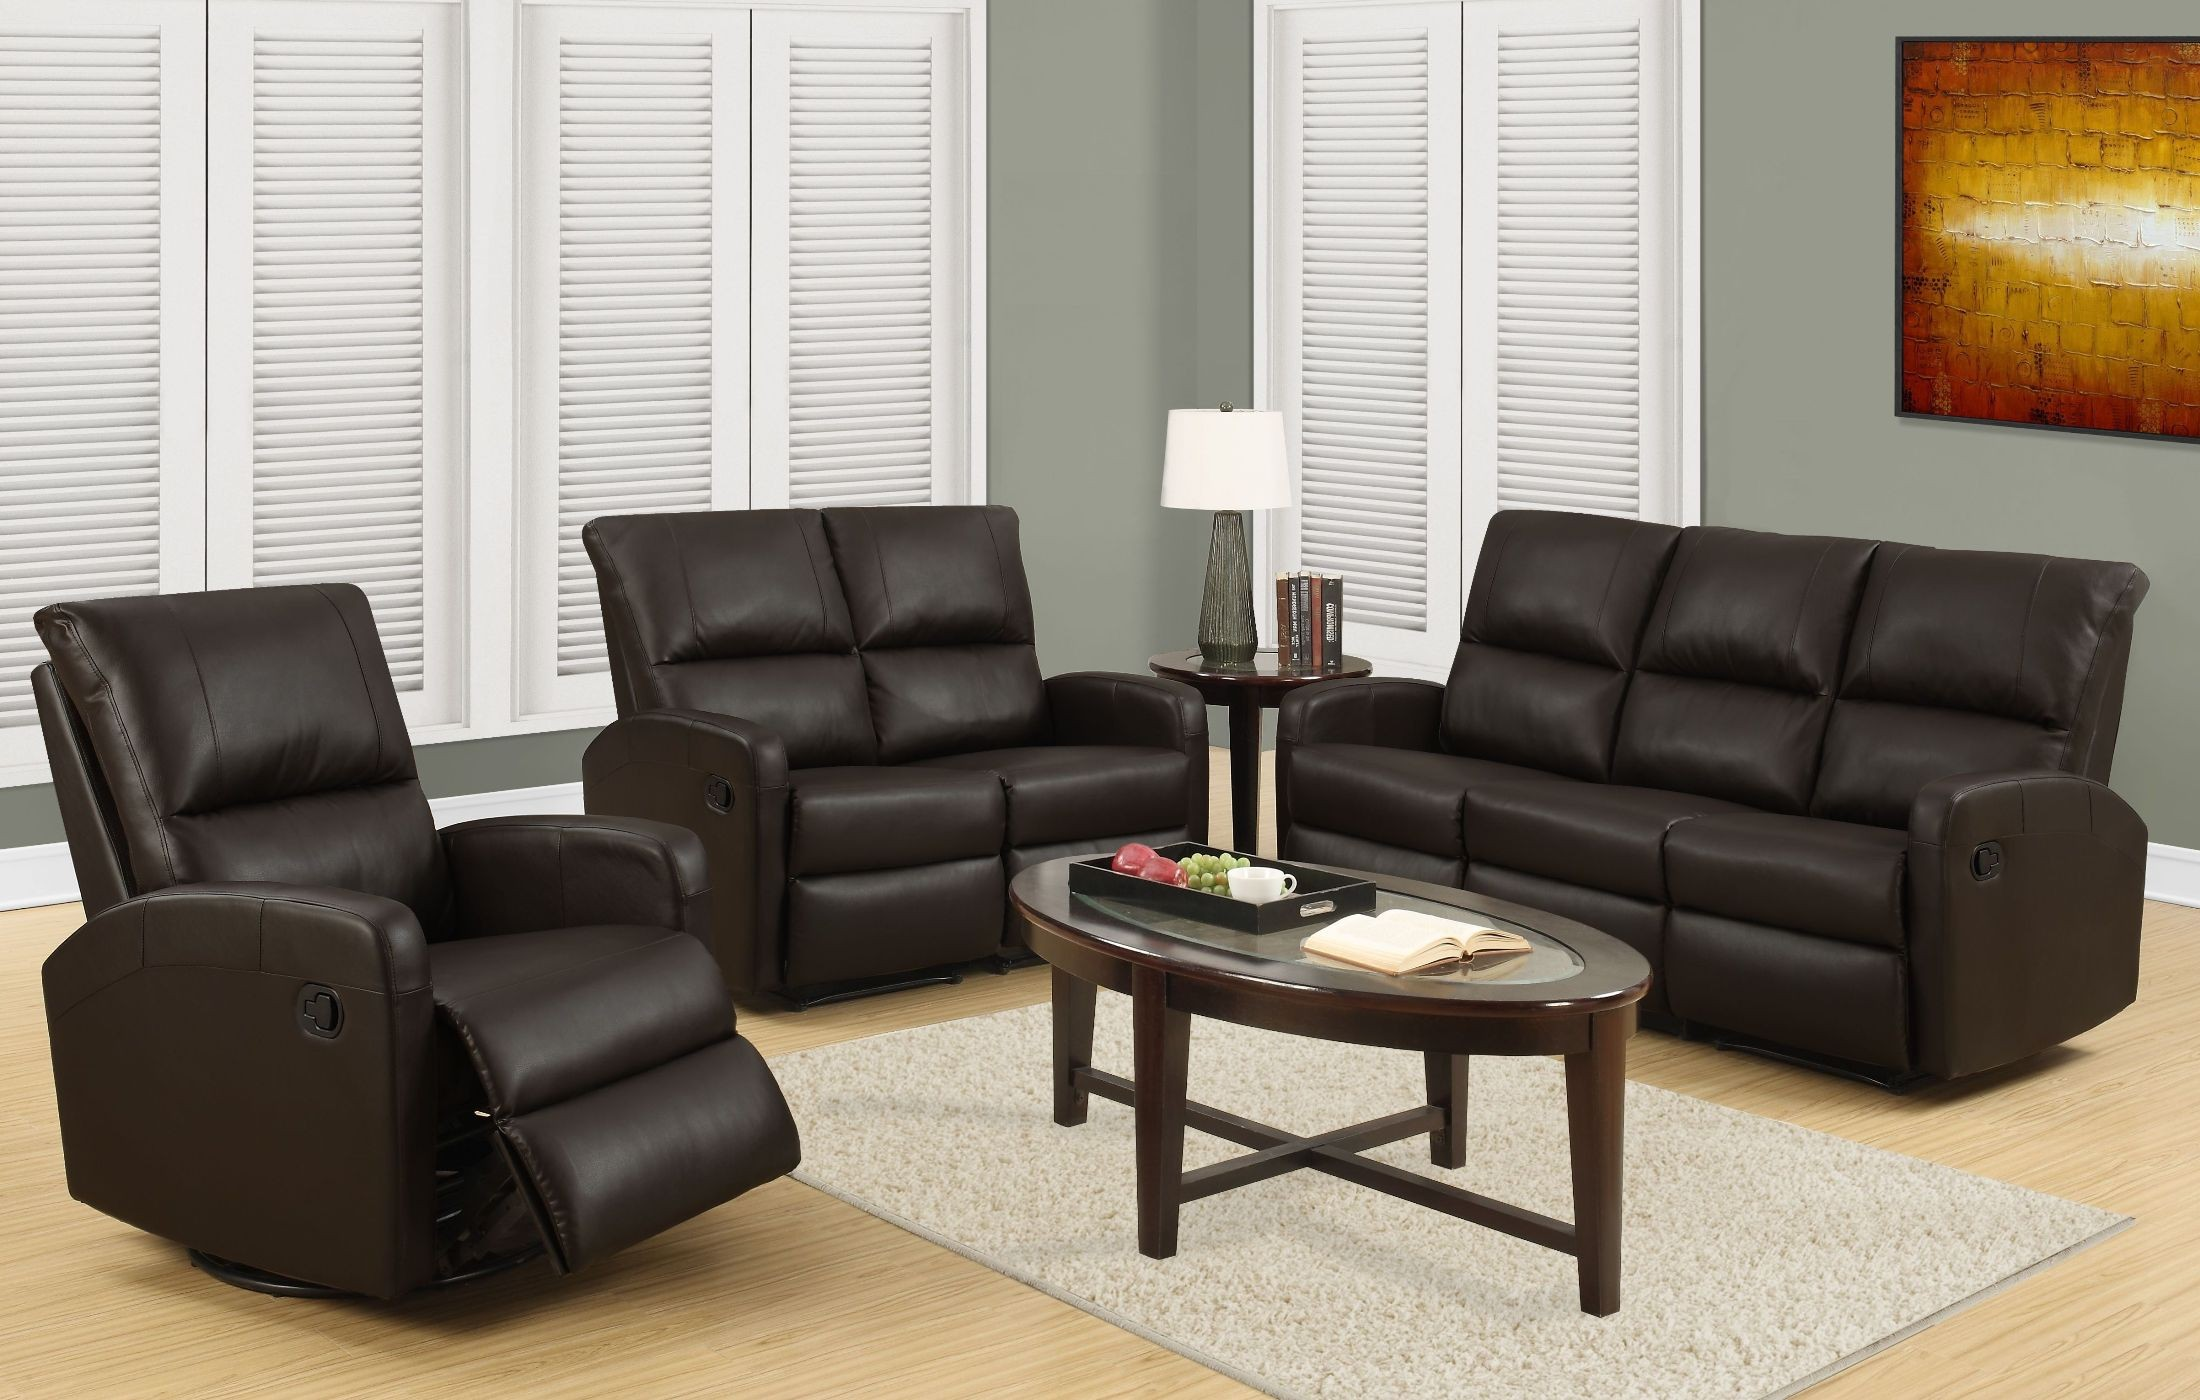 84br 3 dark brown bonded leather reclining living room set - Chocolate leather living room furniture ...